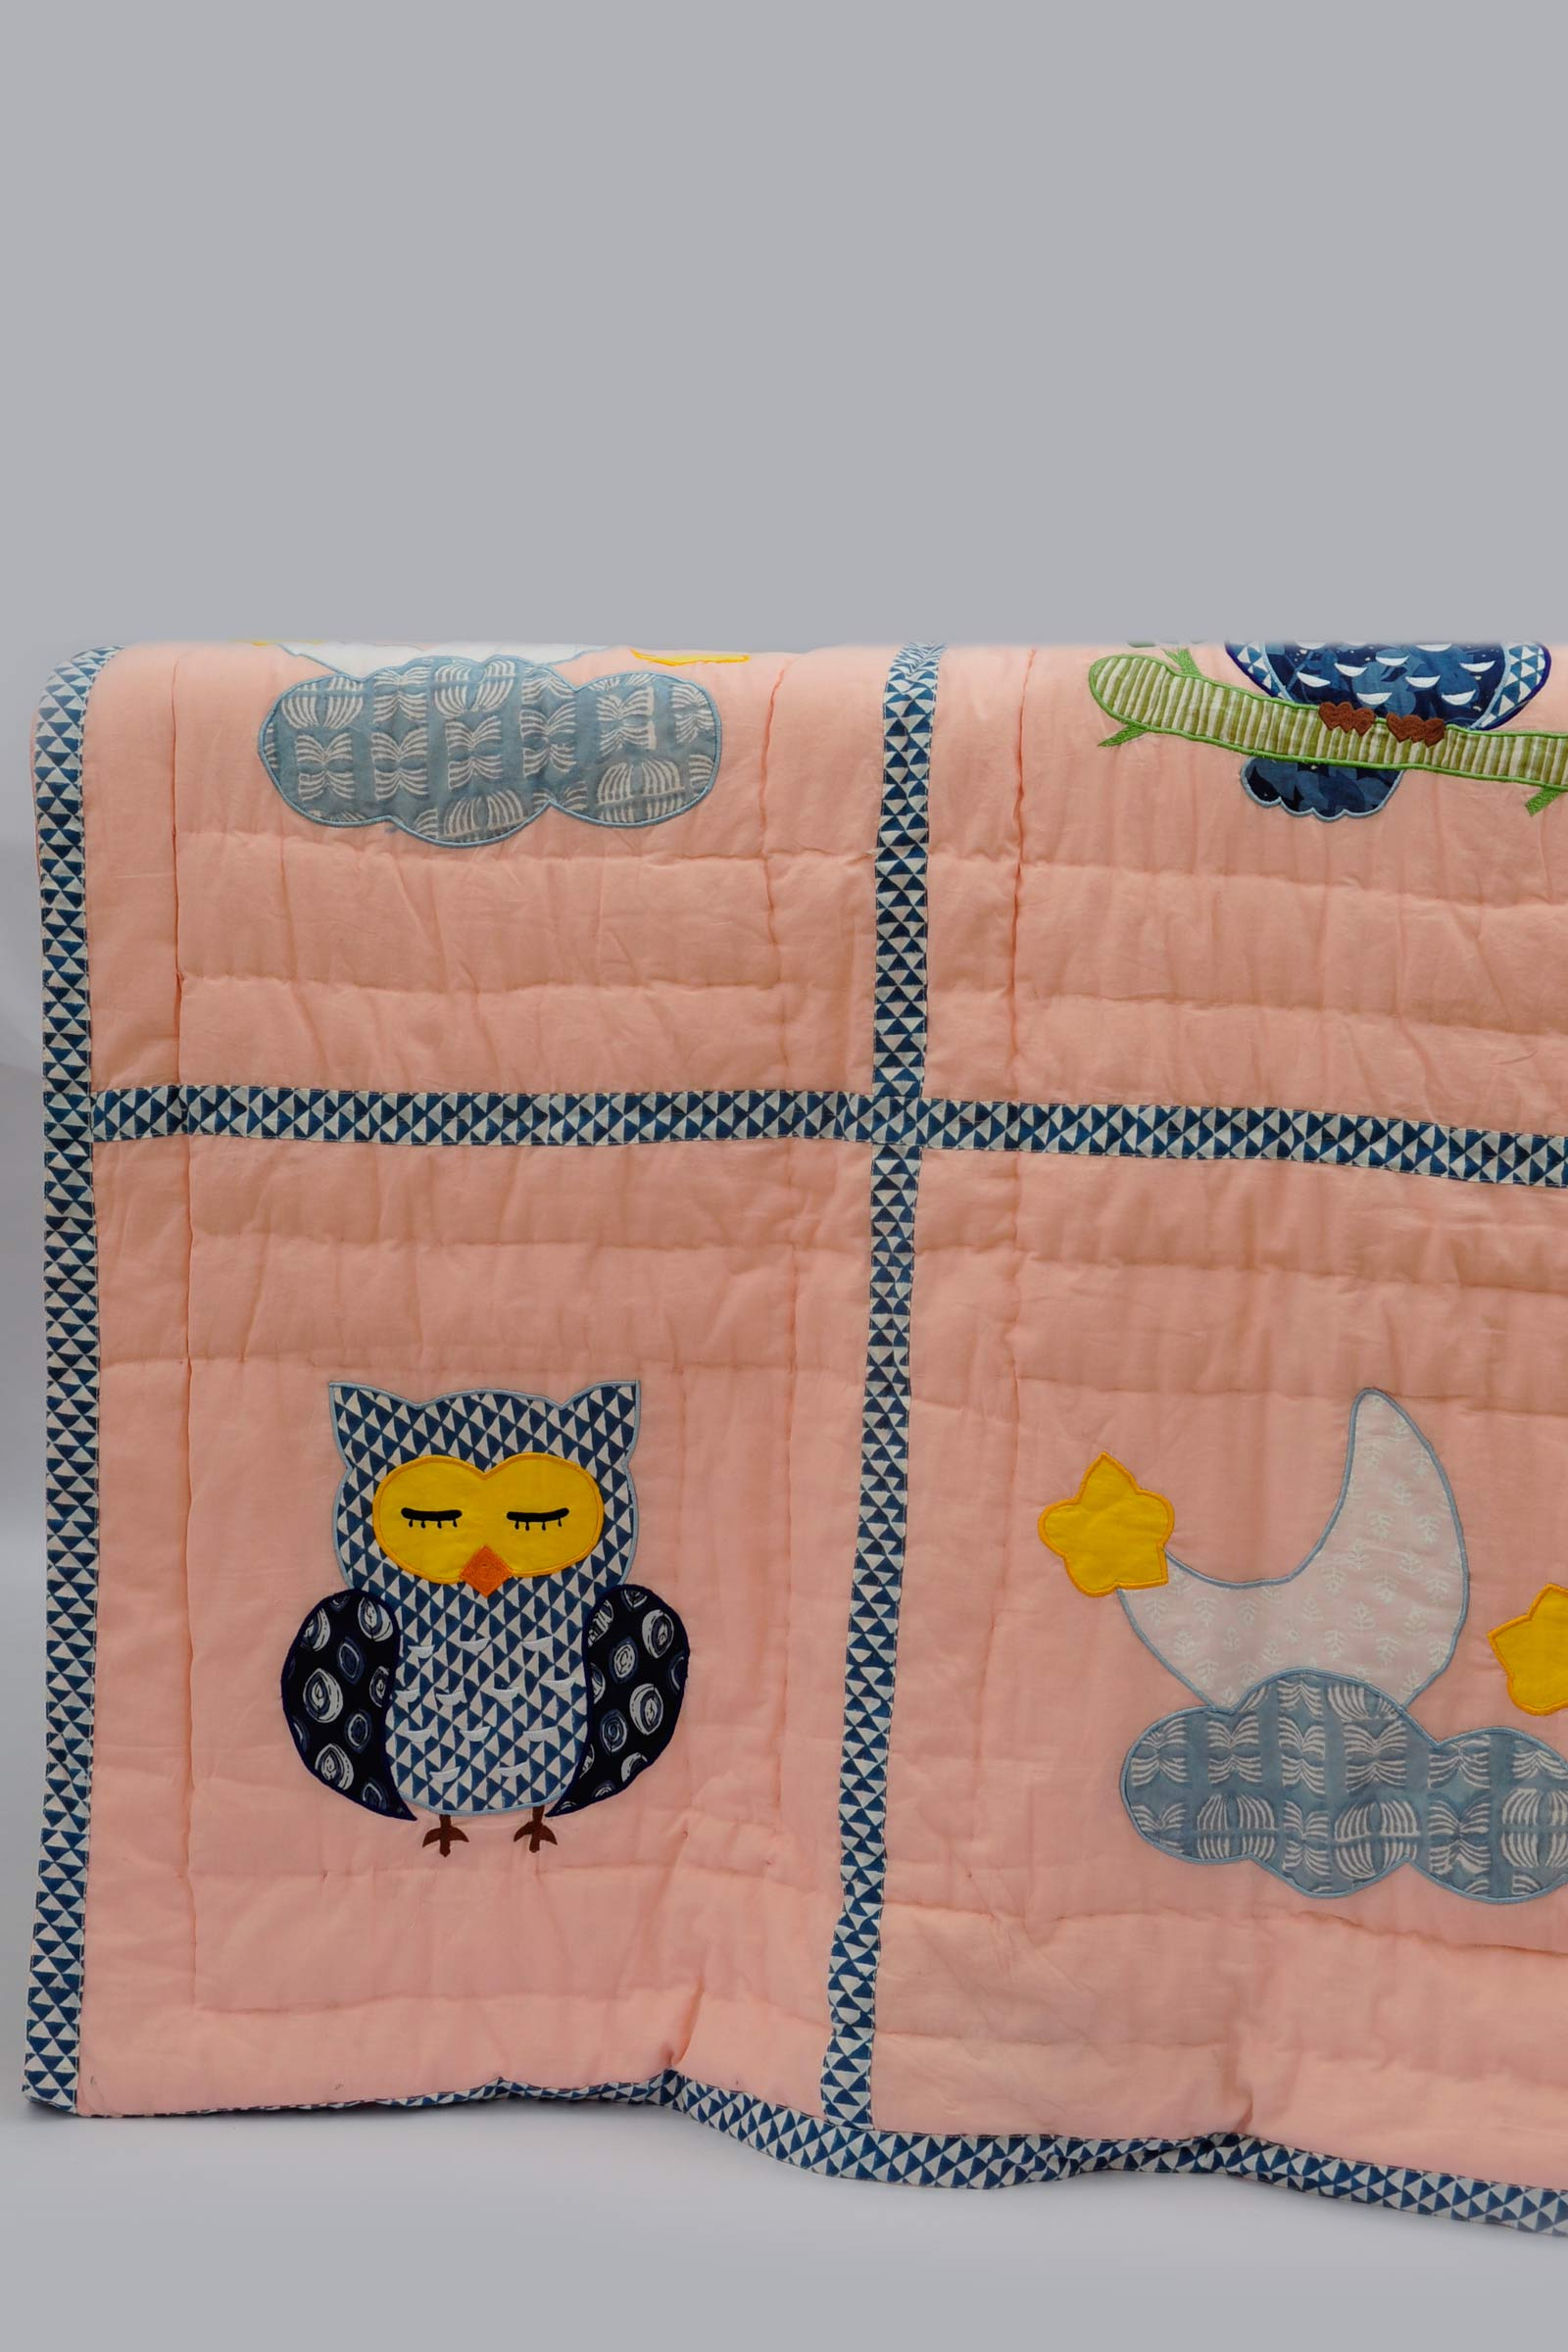 Sleepy Owl Quilt